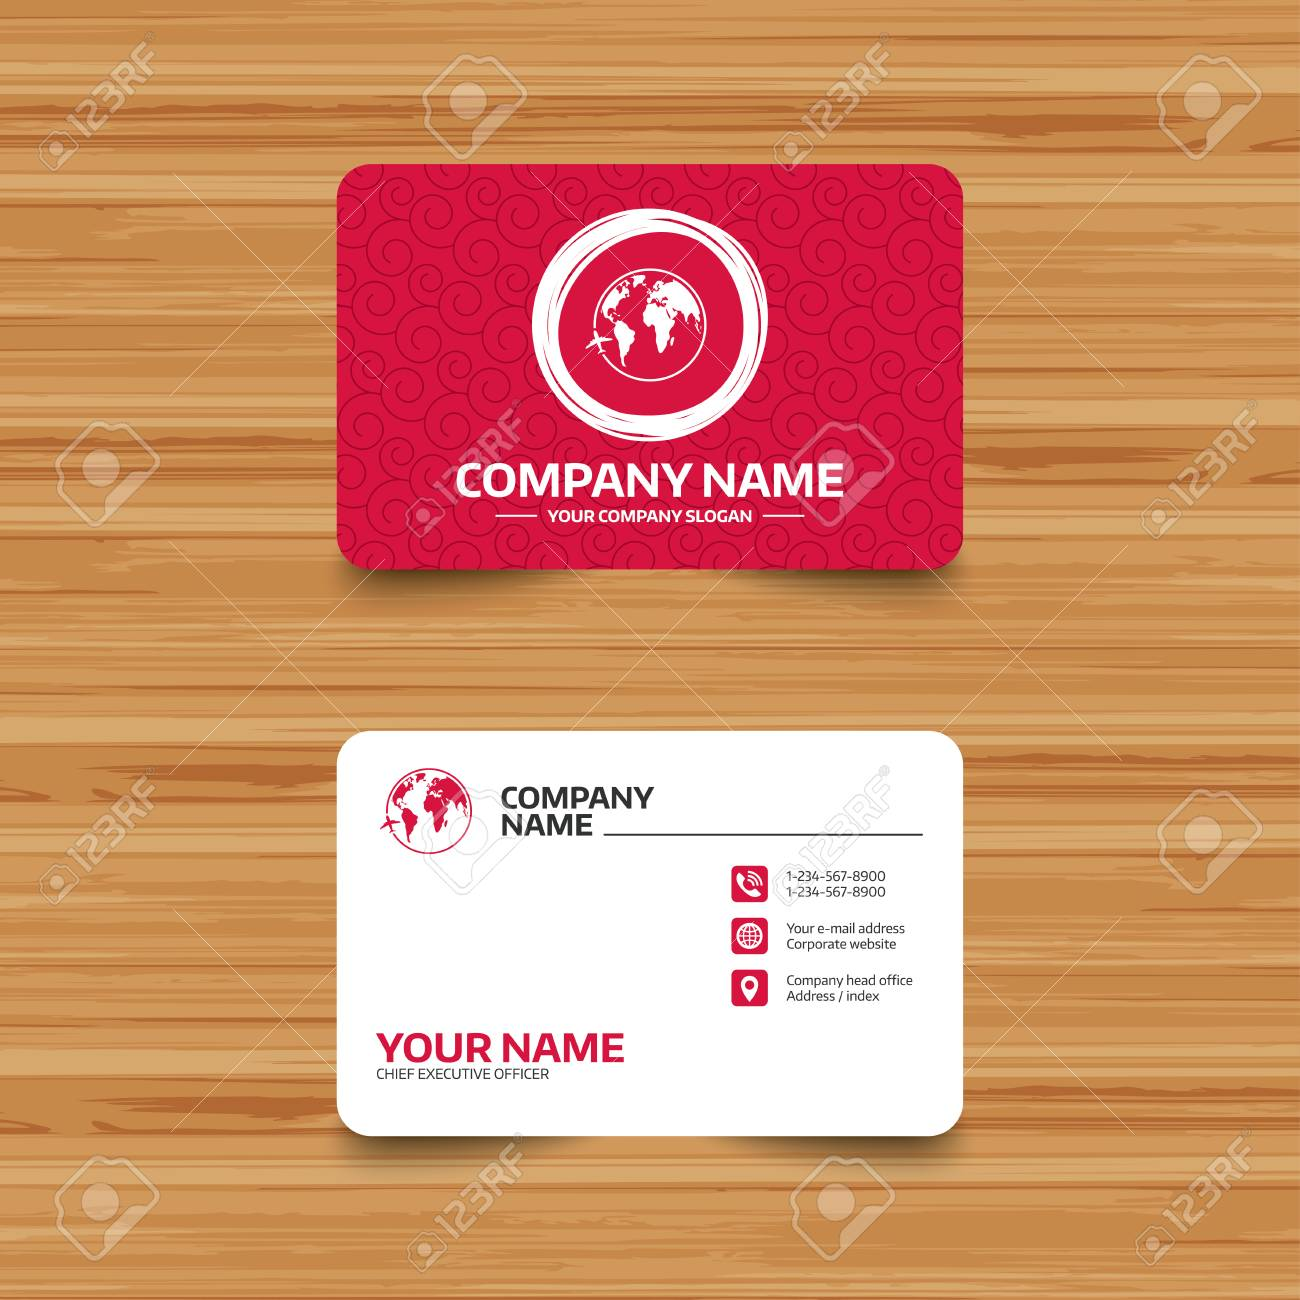 Business card template with texture airplane sign icon travel business card template with texture airplane sign icon travel trip round the world symbol cheaphphosting